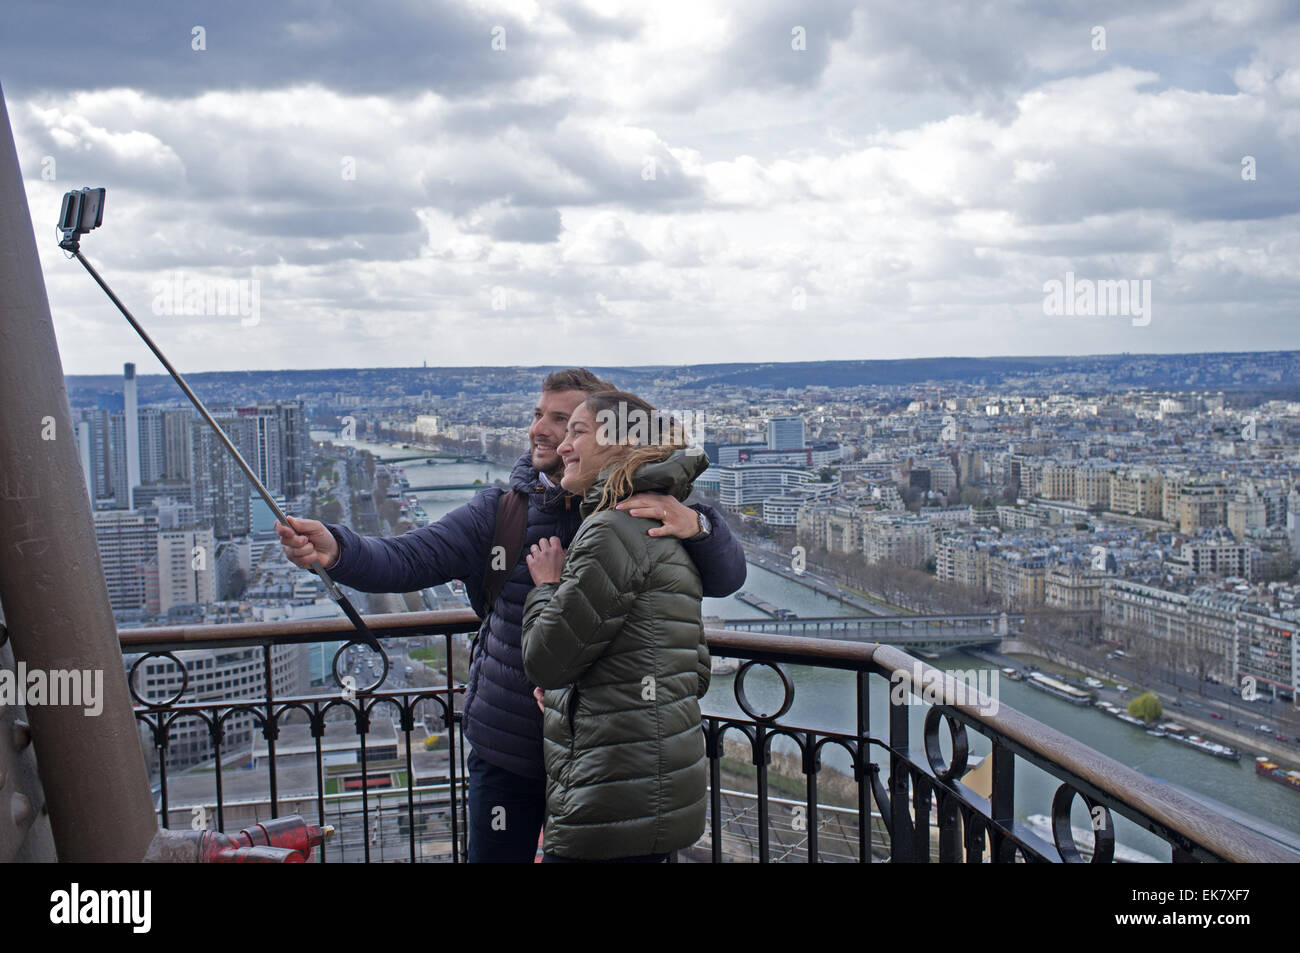 A couple take a 'selfie' on the Eiffel Tower in Paris - Stock Image